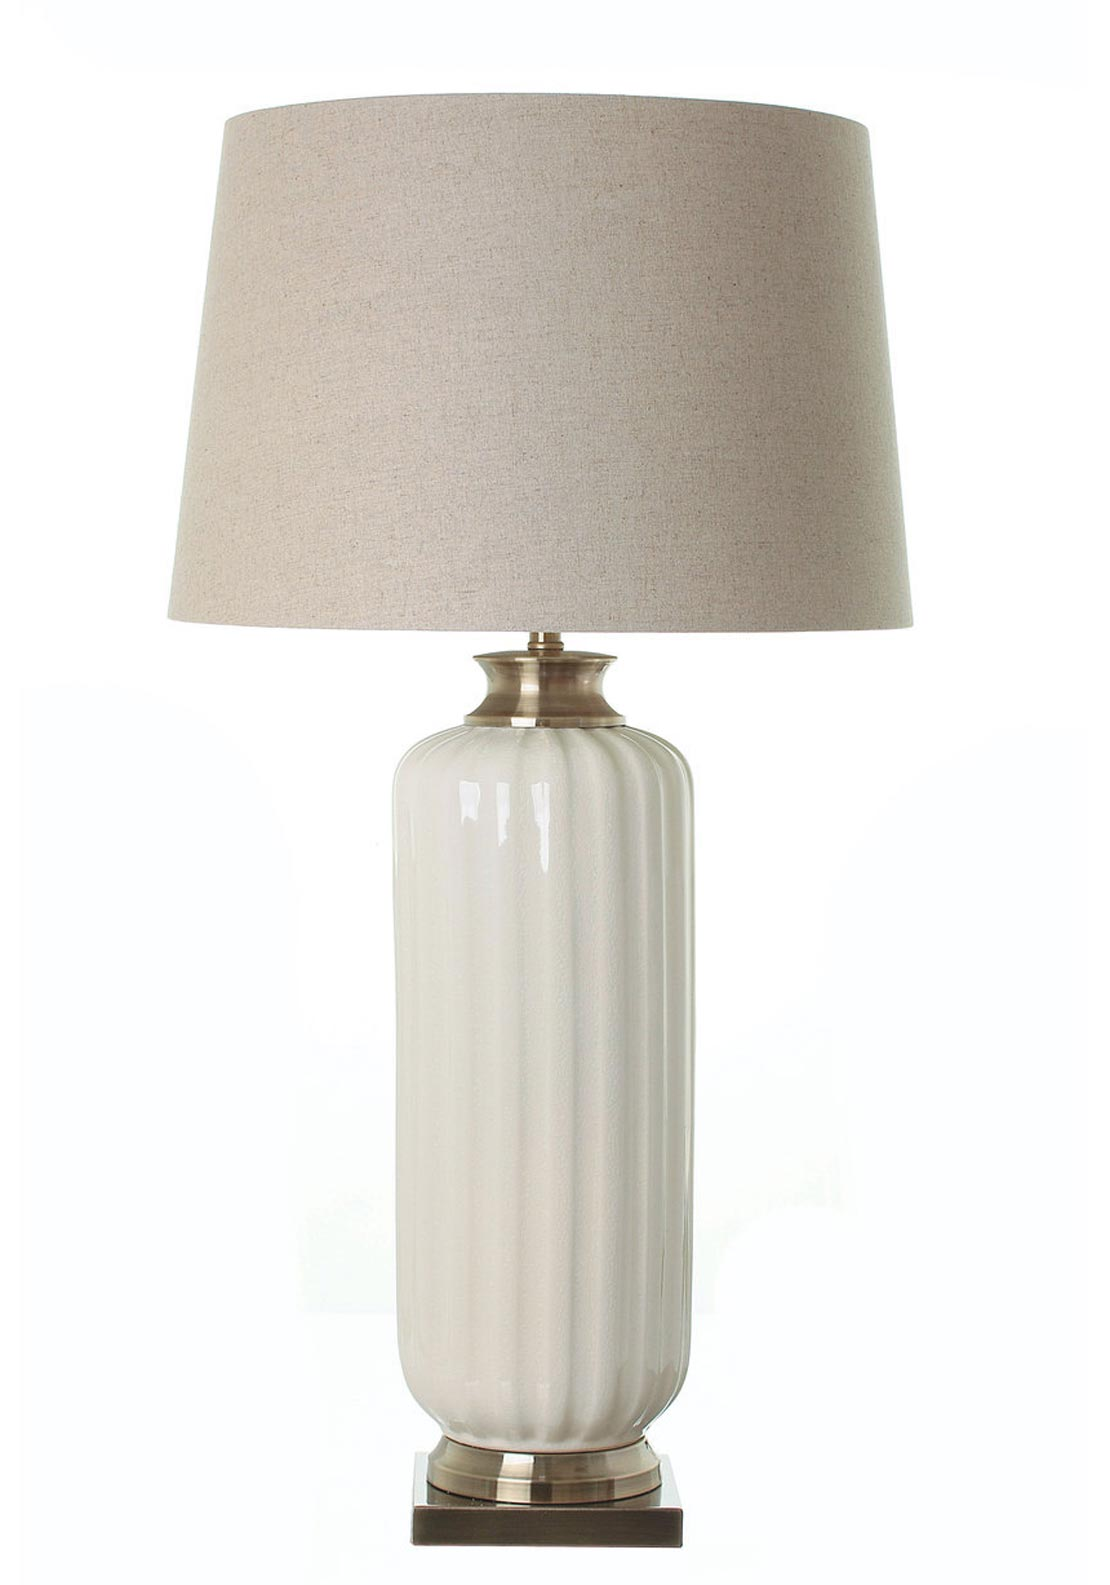 Mindy Brownes Tia Lamp, White